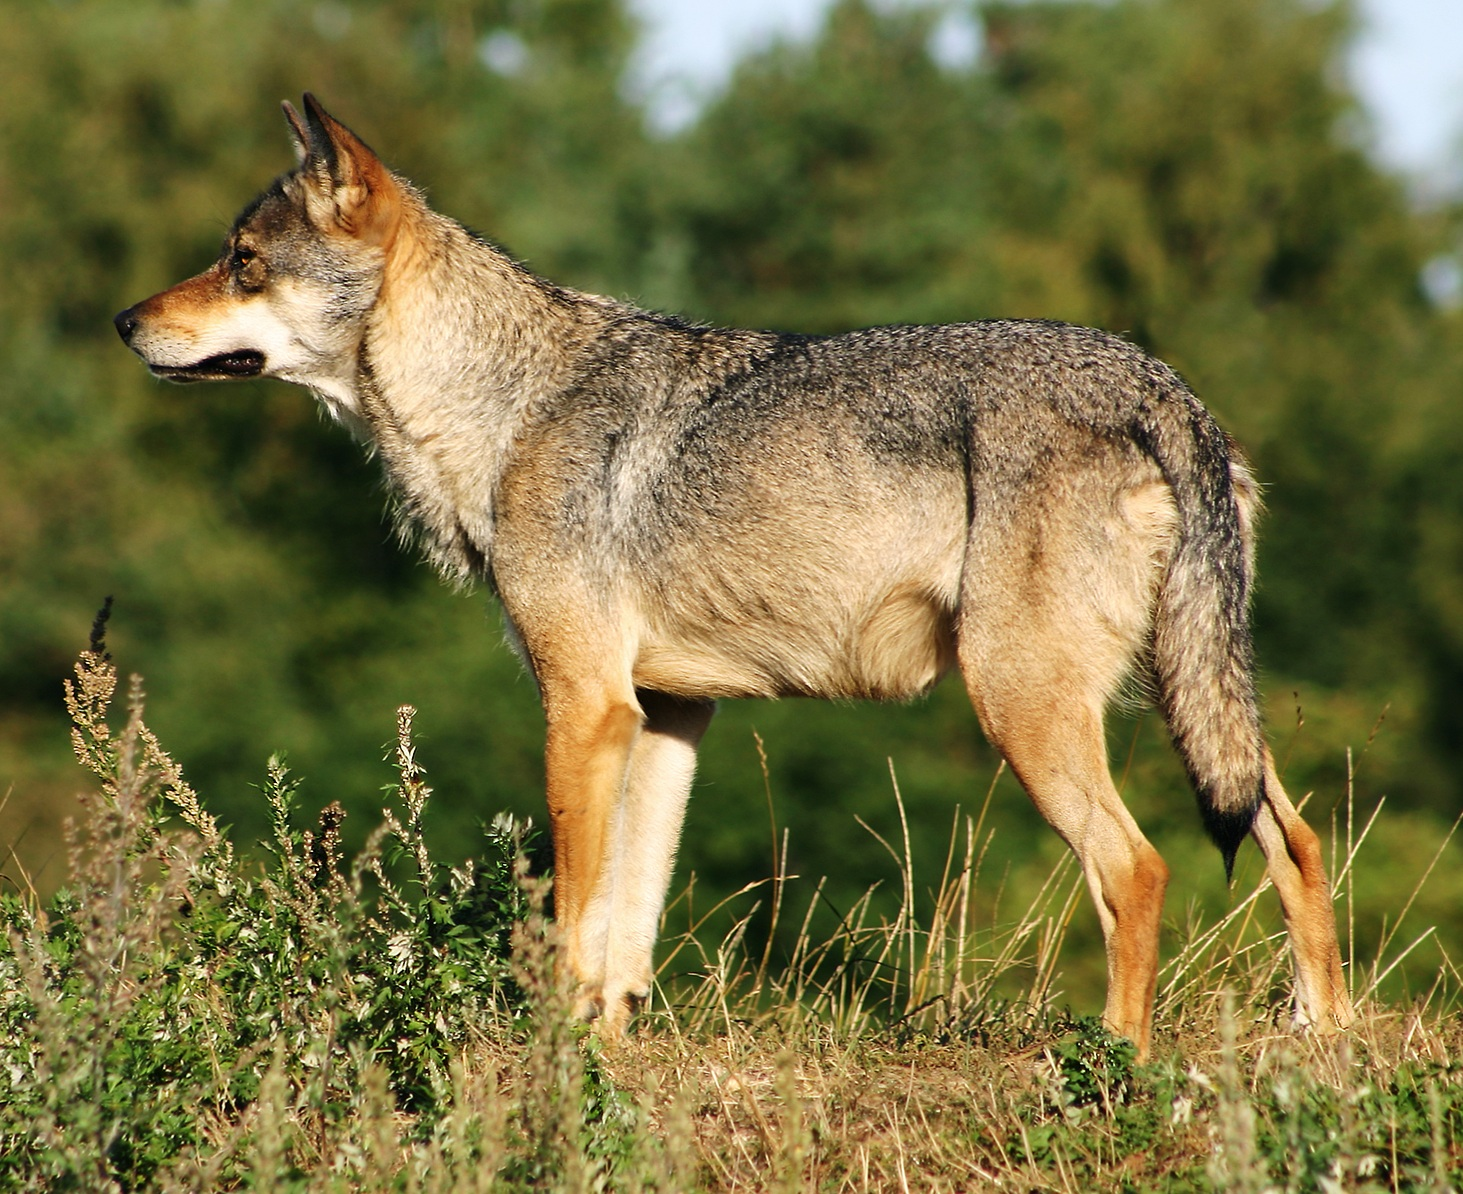 Scandinavian_grey_wolf_Canis_lupus_%28cropped%29.jpg